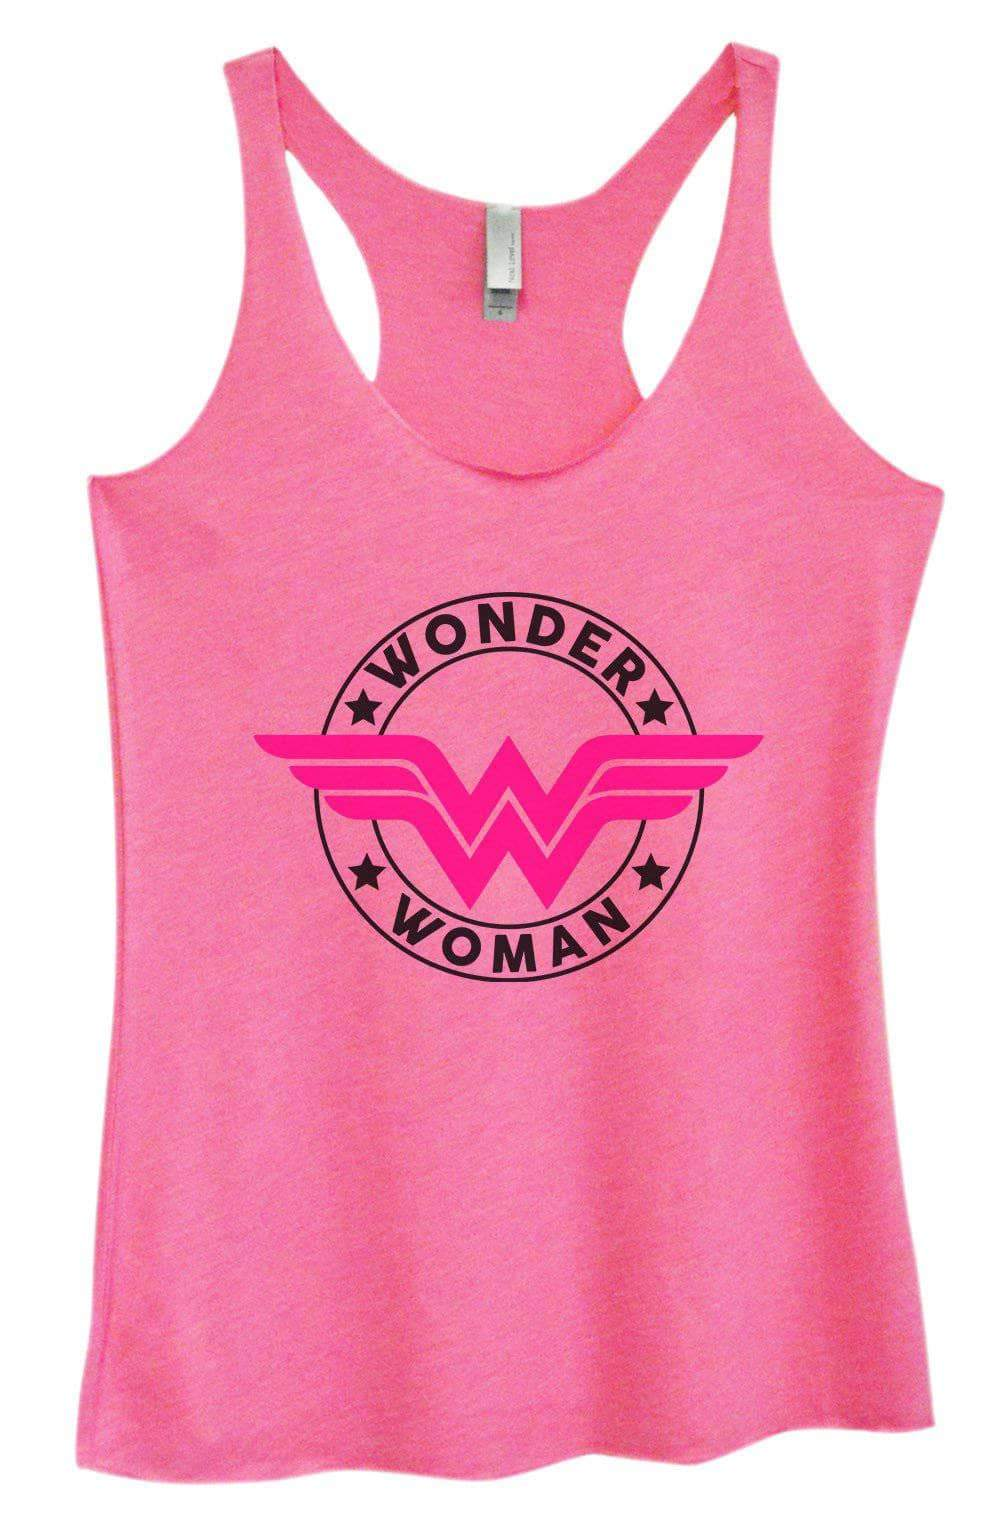 Womens Tri-Blend Tank Top - Wonder Woman Small Womens Tank Tops Vintage Pink